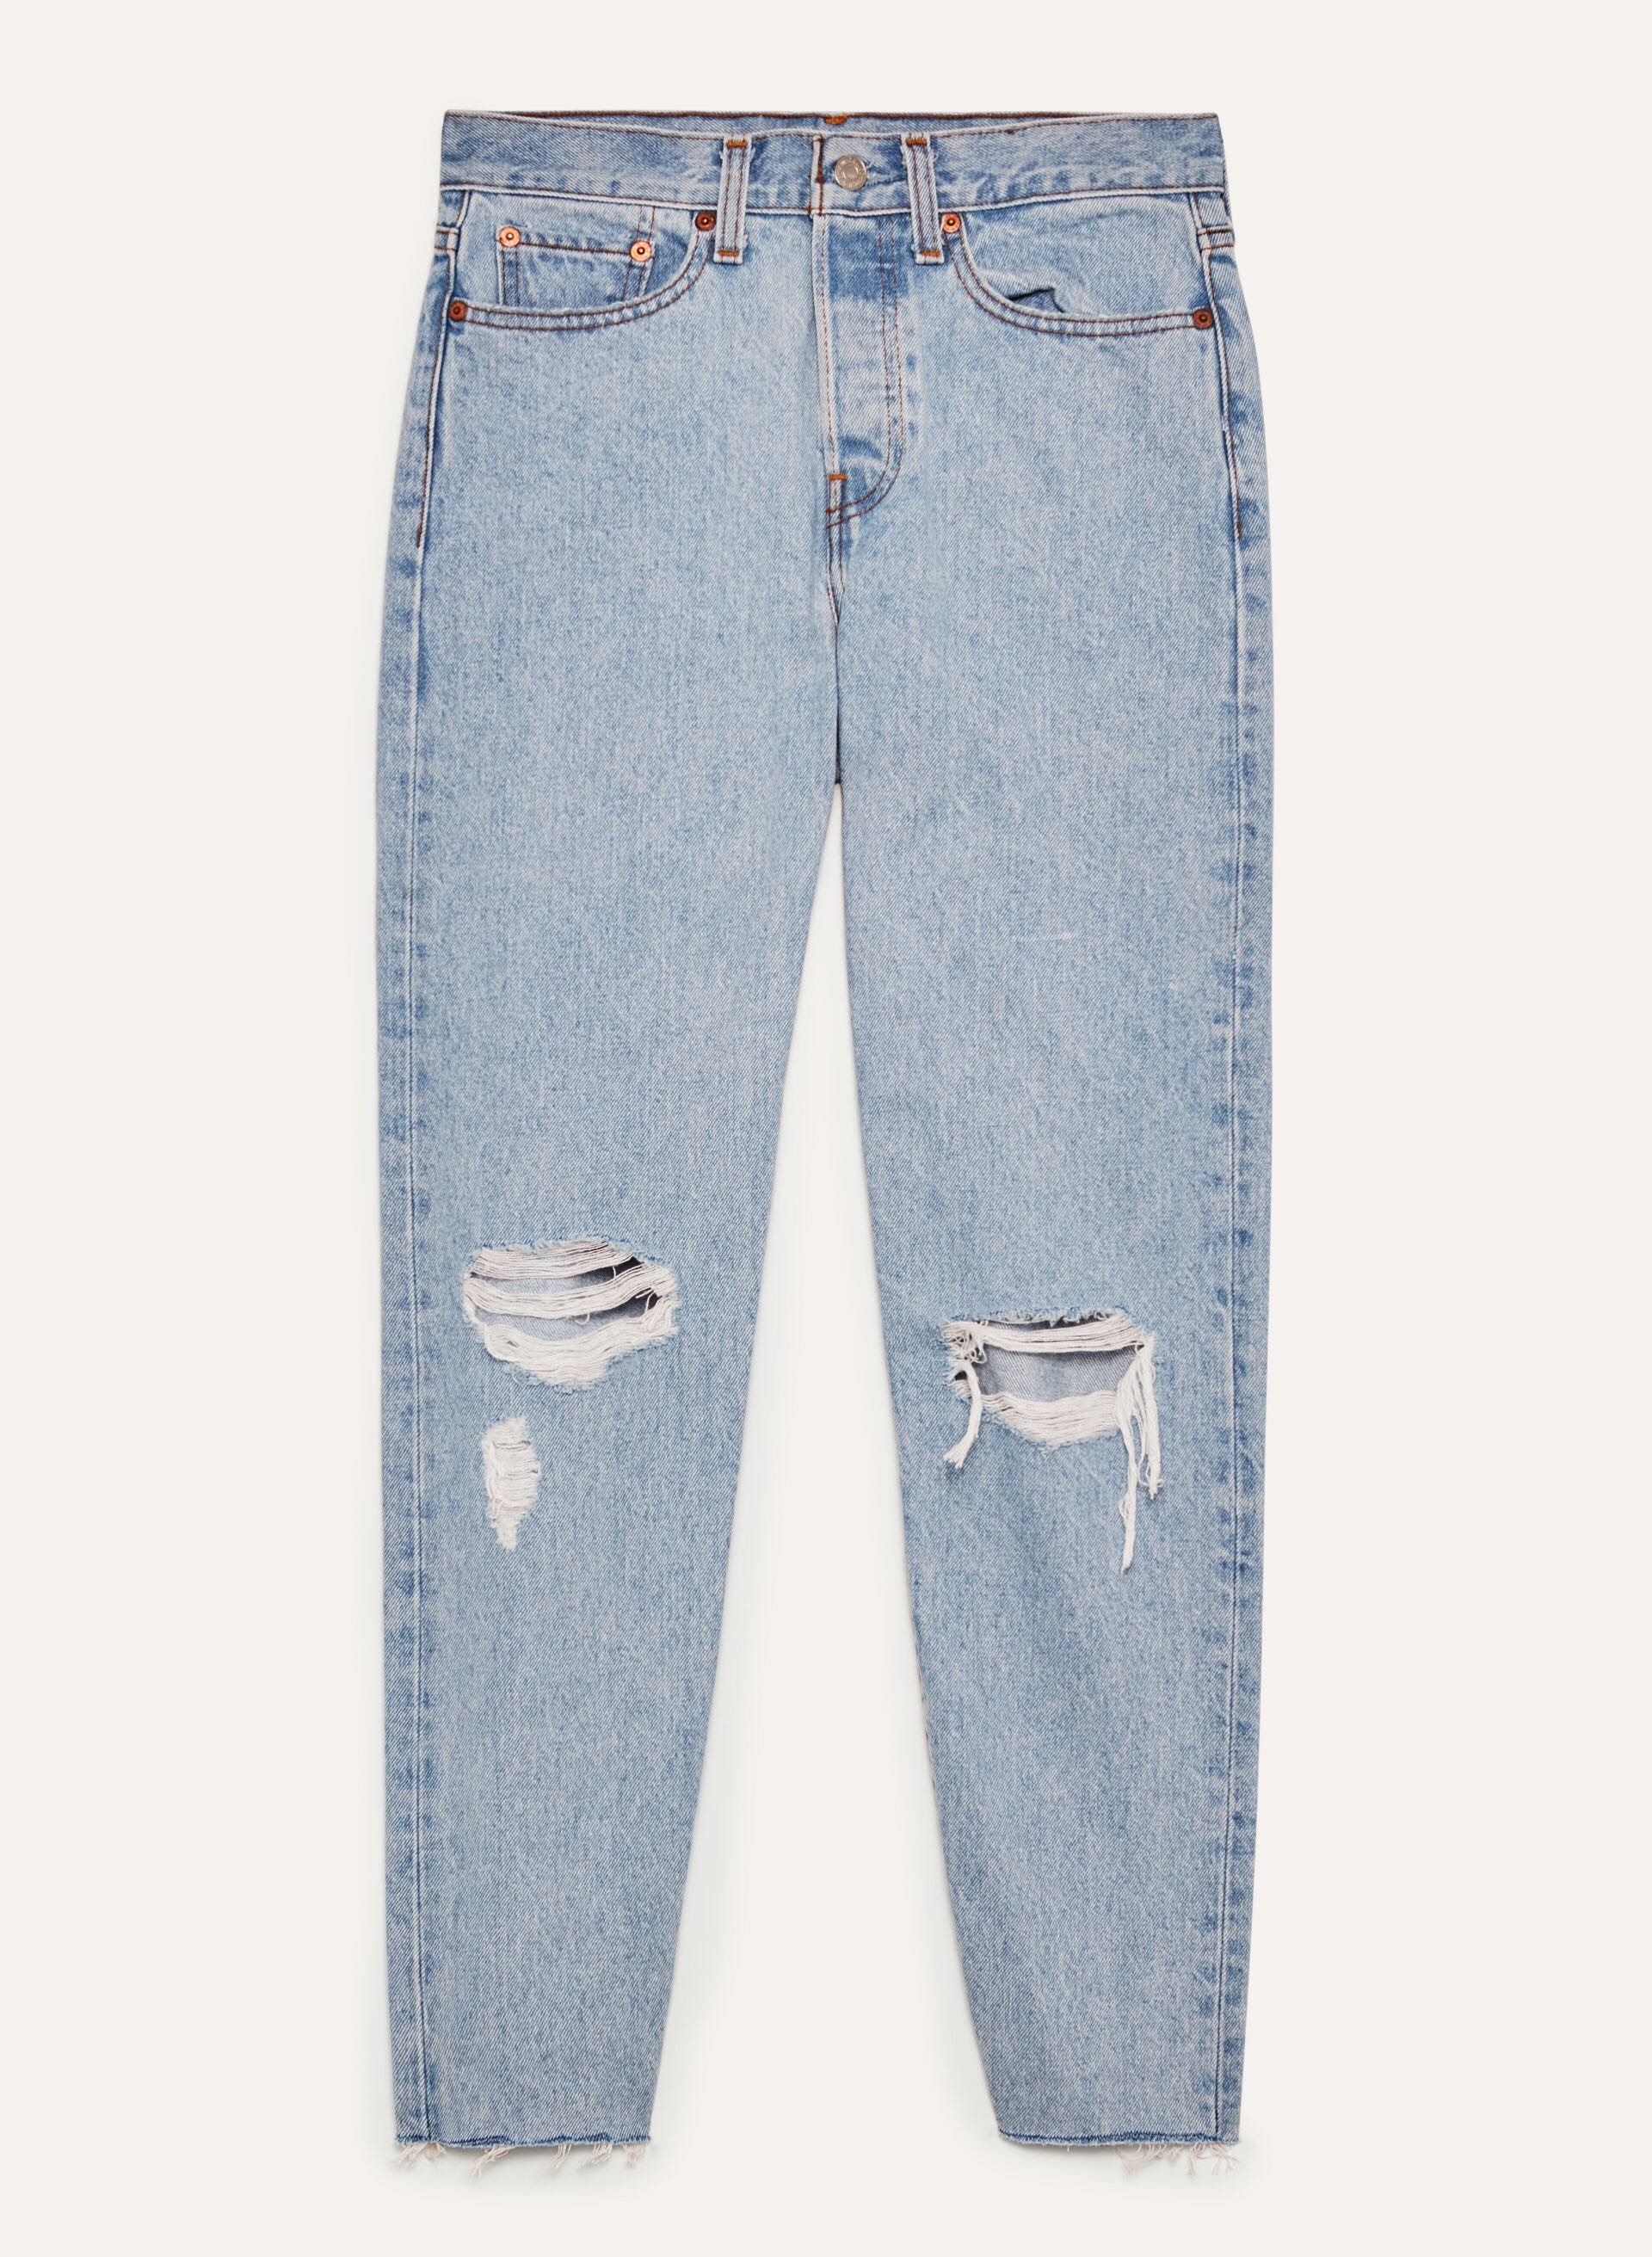 Aritxia Levi's wedgie jeans